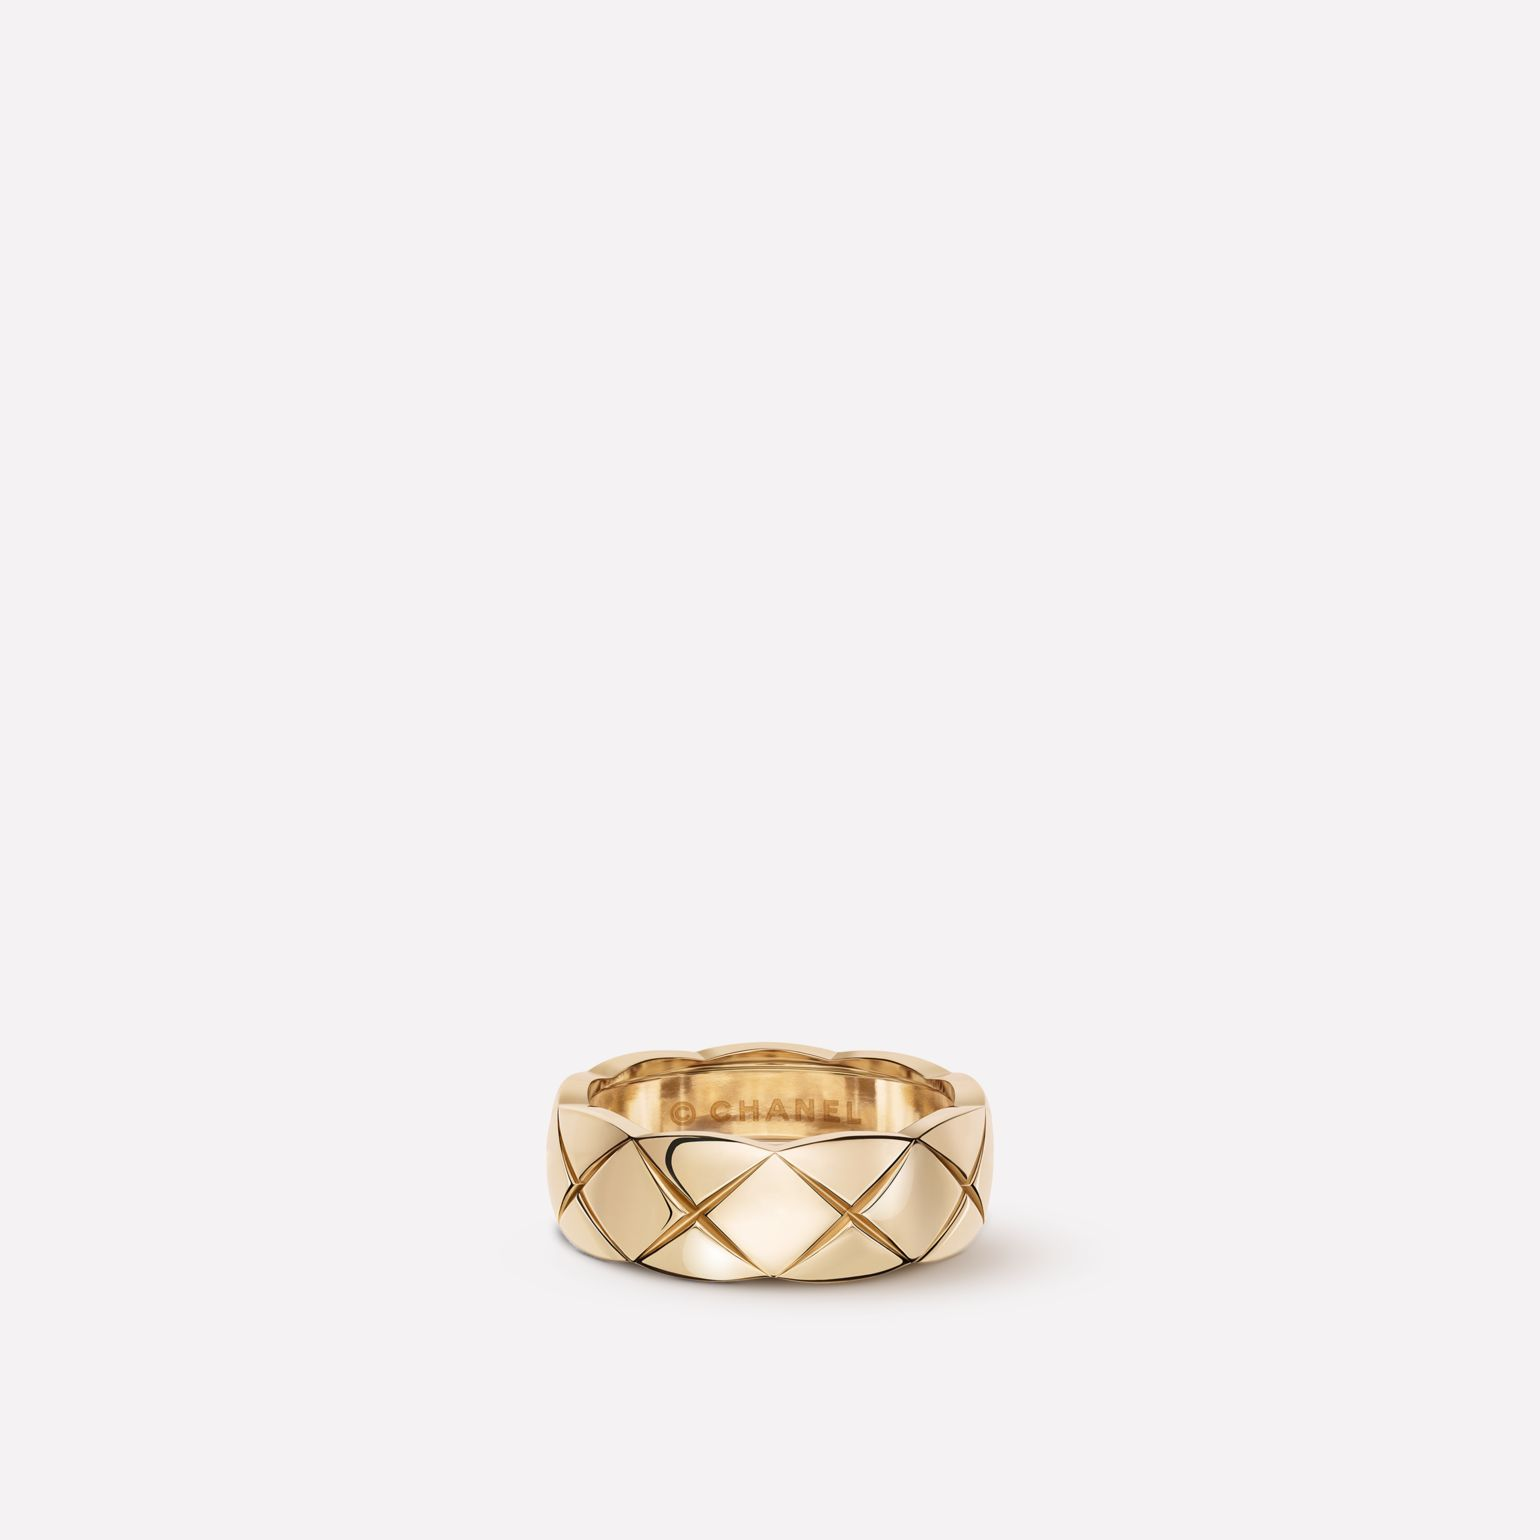 Coco Crush ring Quilted motif, small version, 18K BEIGE GOLD